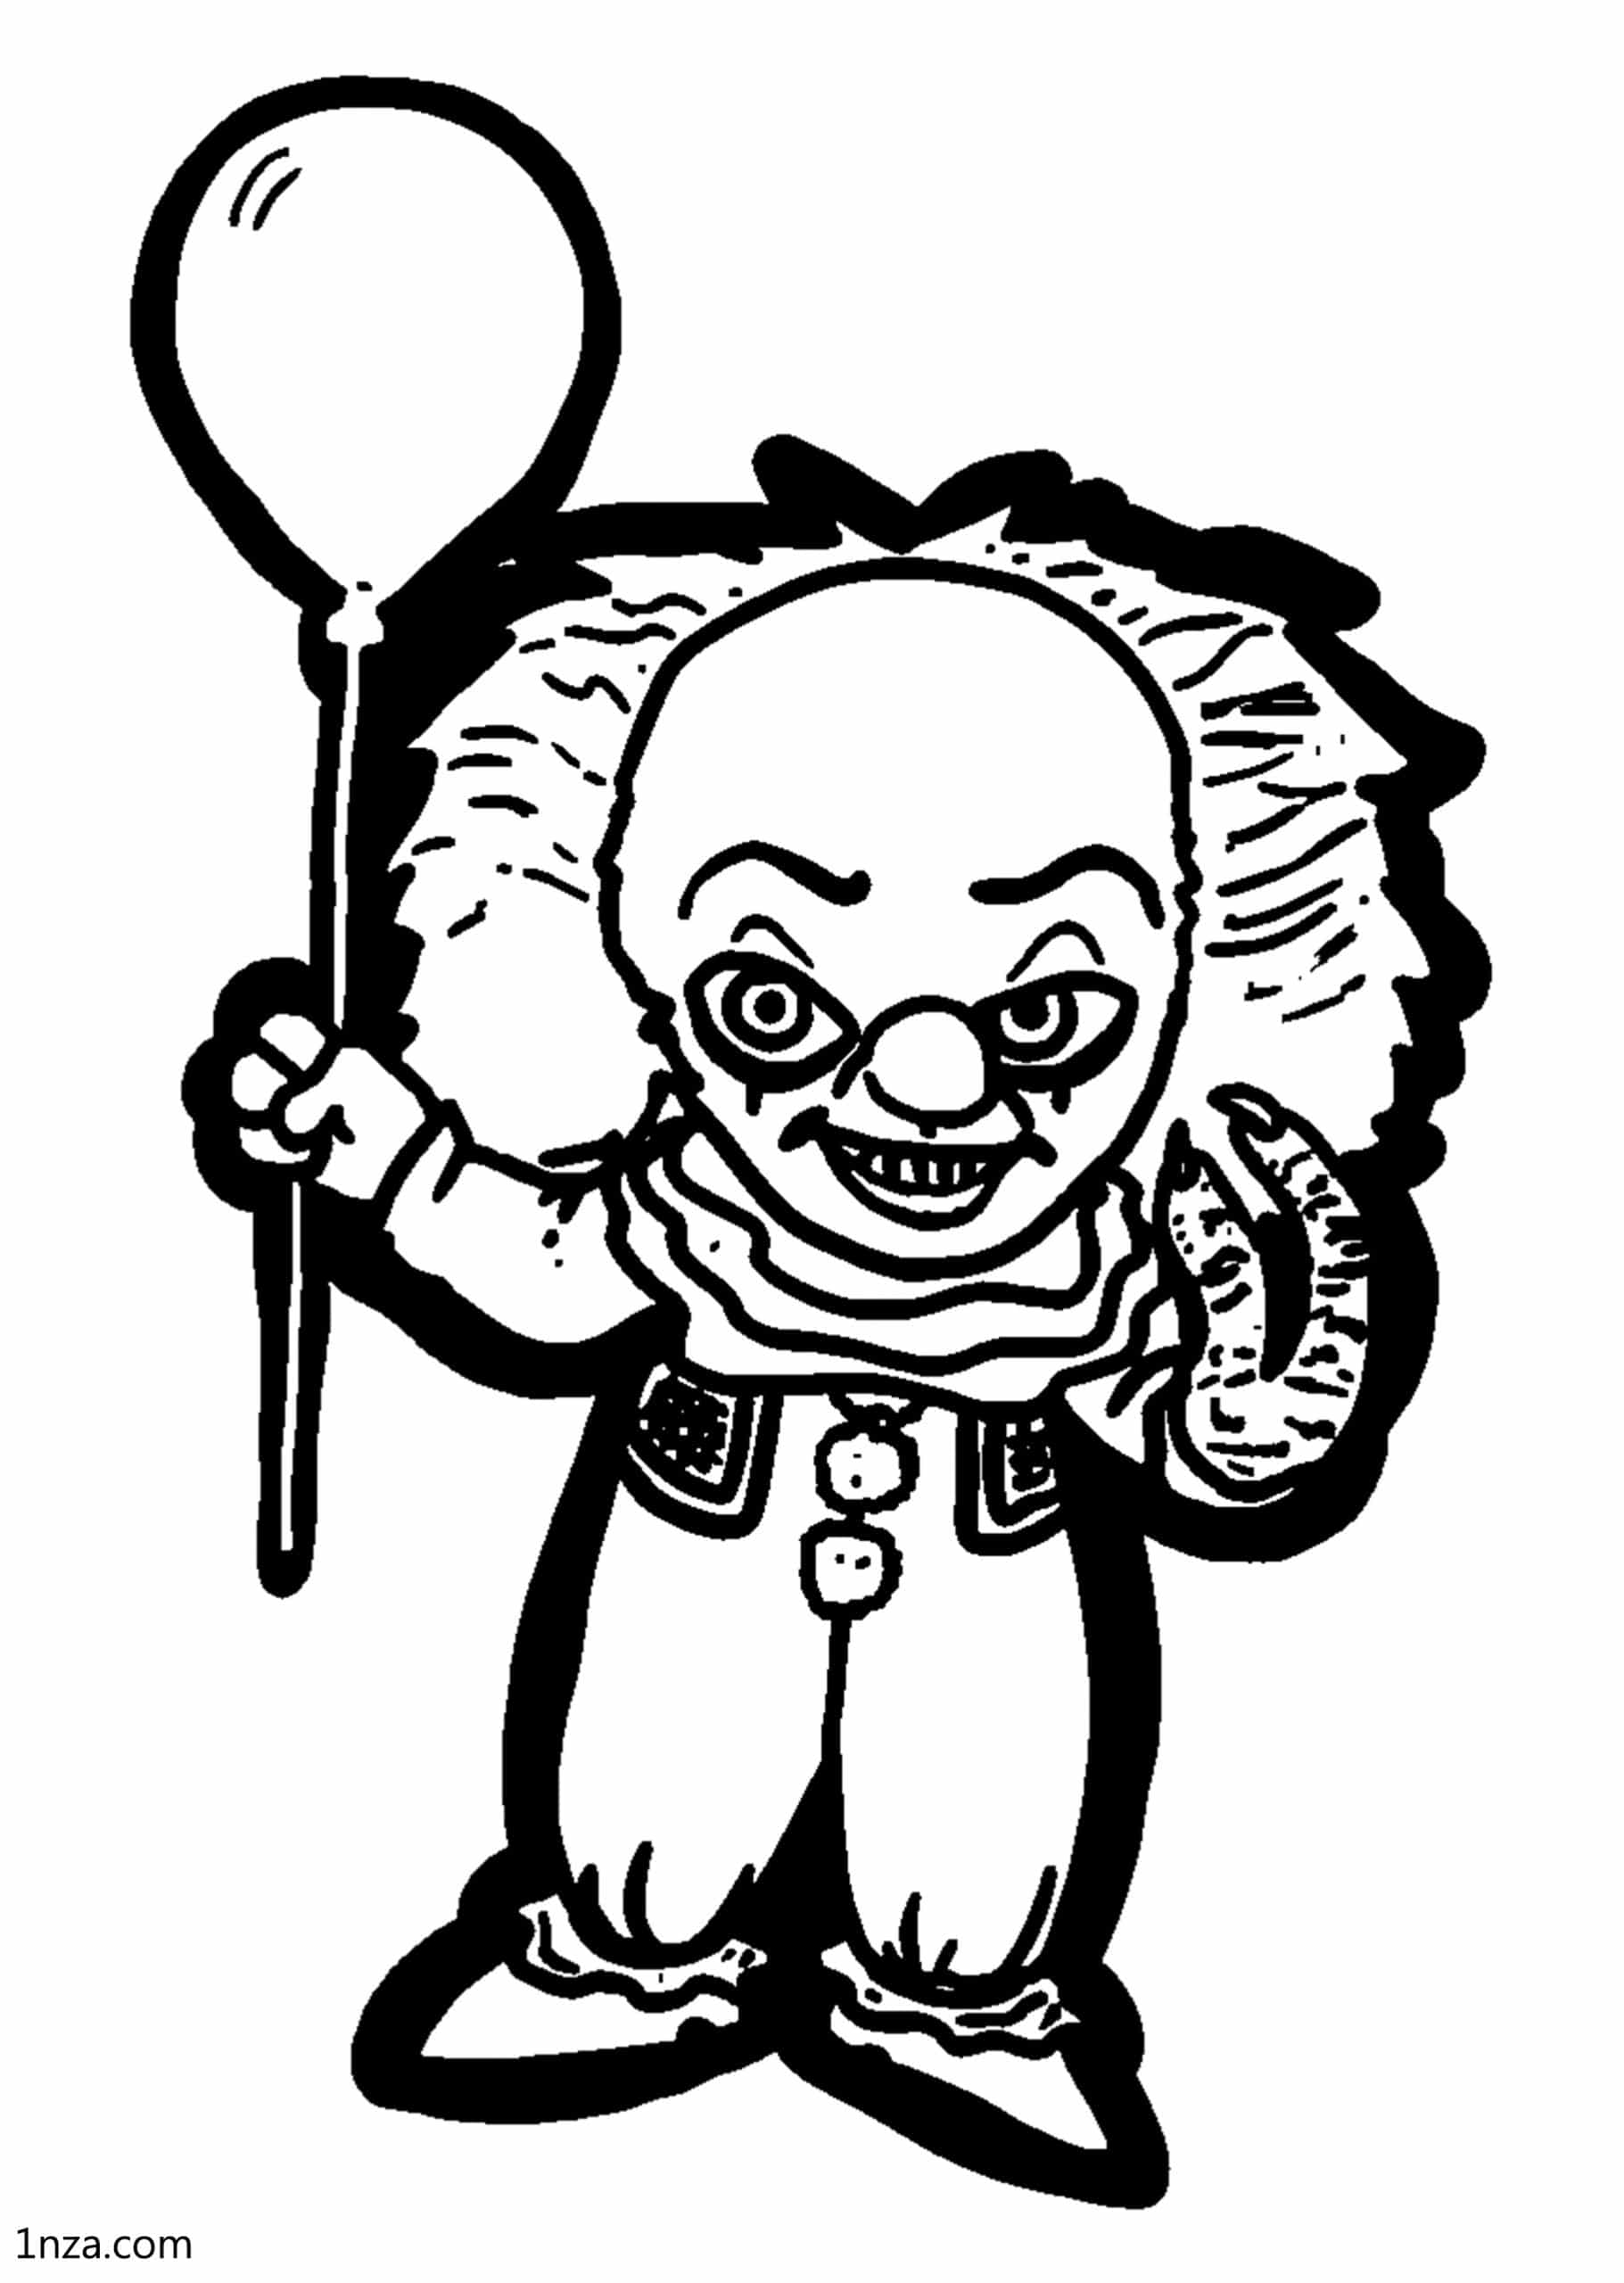 Pennywise Coloring Pages - Free Printable Coloring Pages ...